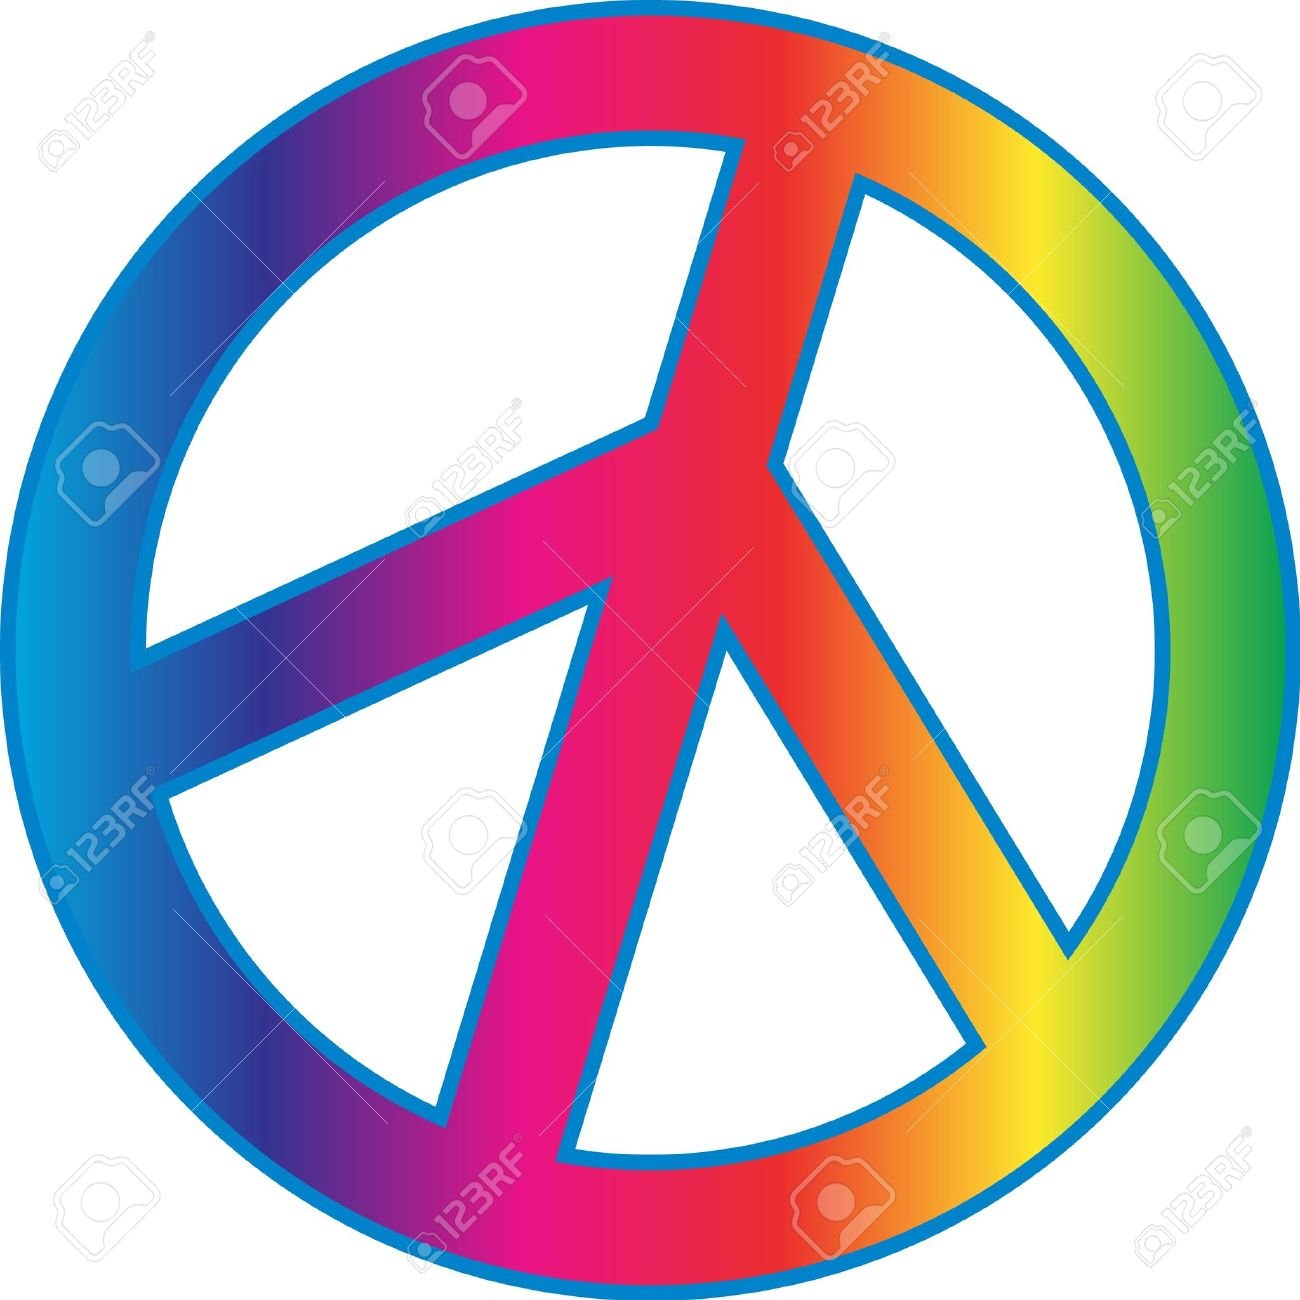 hight resolution of 1300x1300 peace sign clipart tye dye